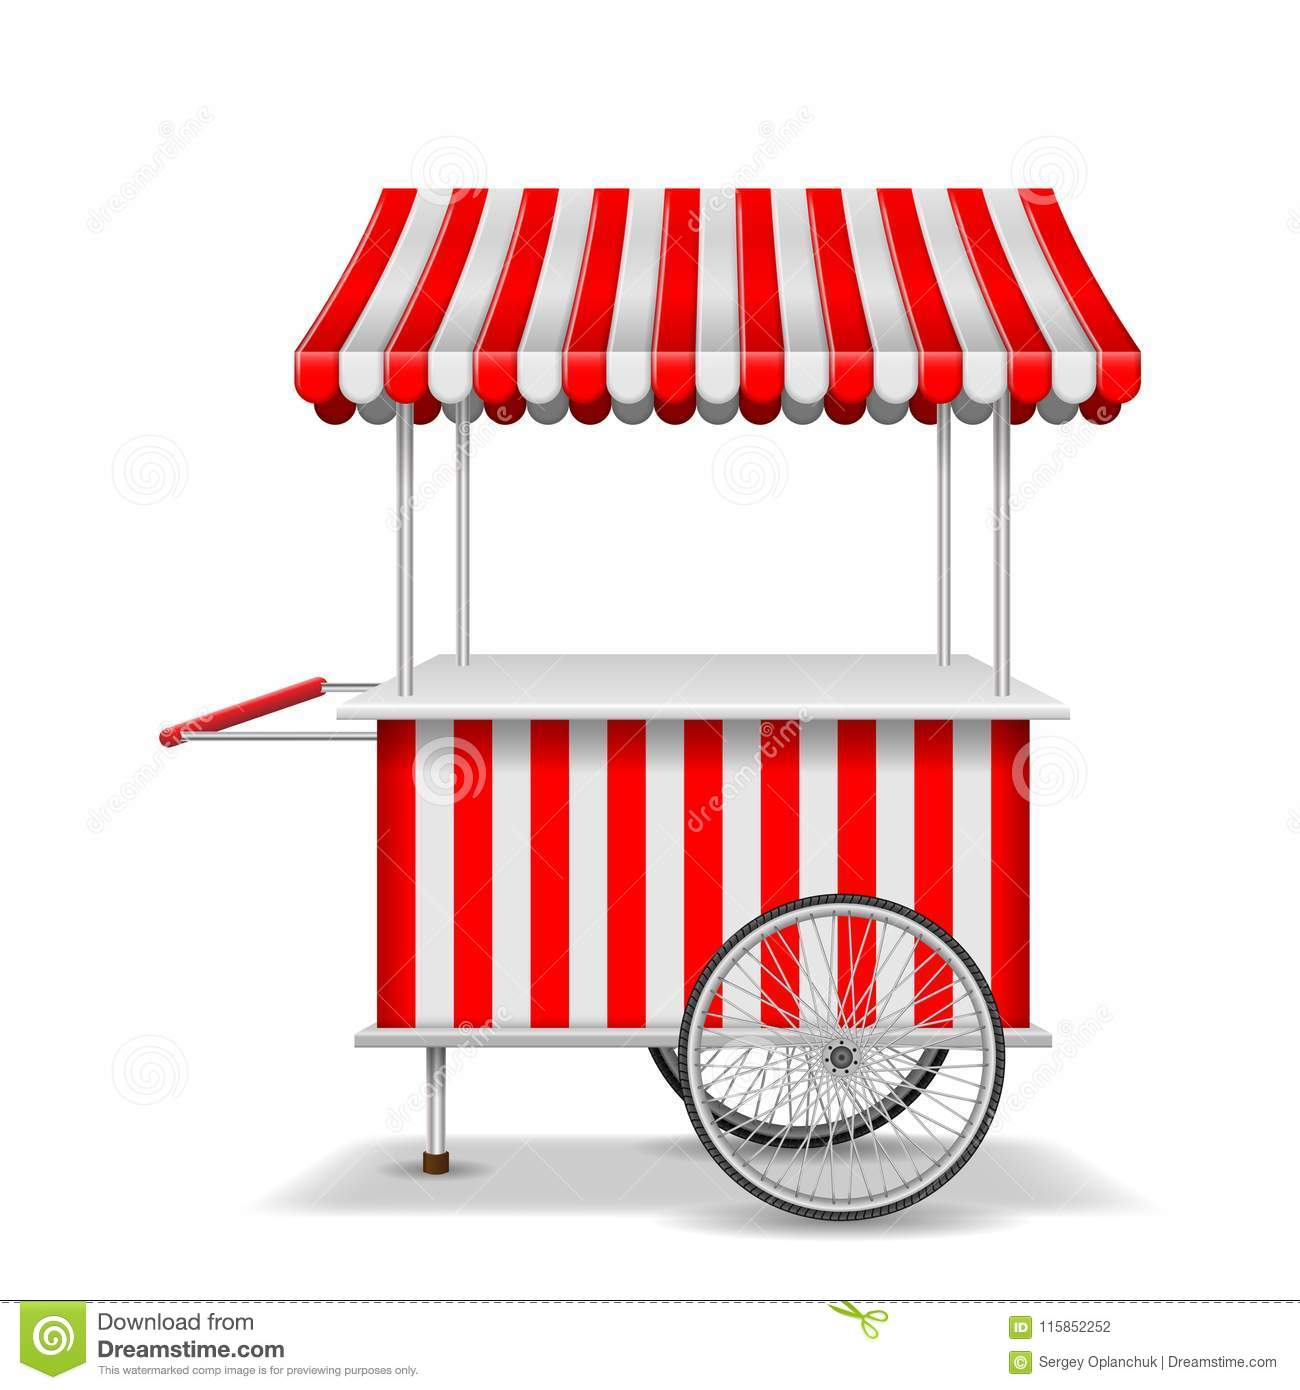 Realistic Street Food Cart With Wheels. Mobile Red Market Stall.